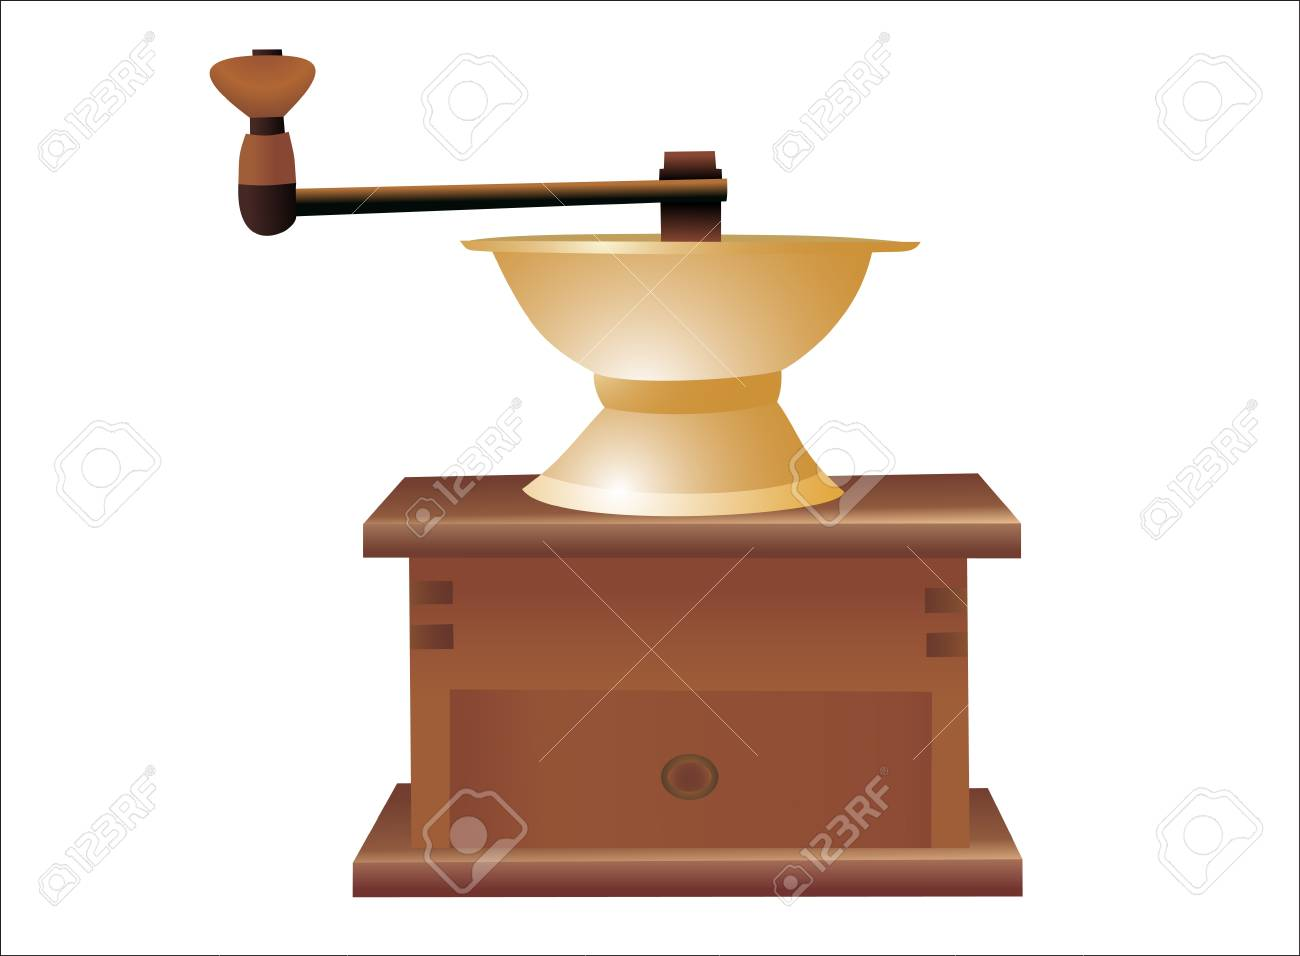 Vintage coffee mill isolated on white background Stock Vector - 14296728